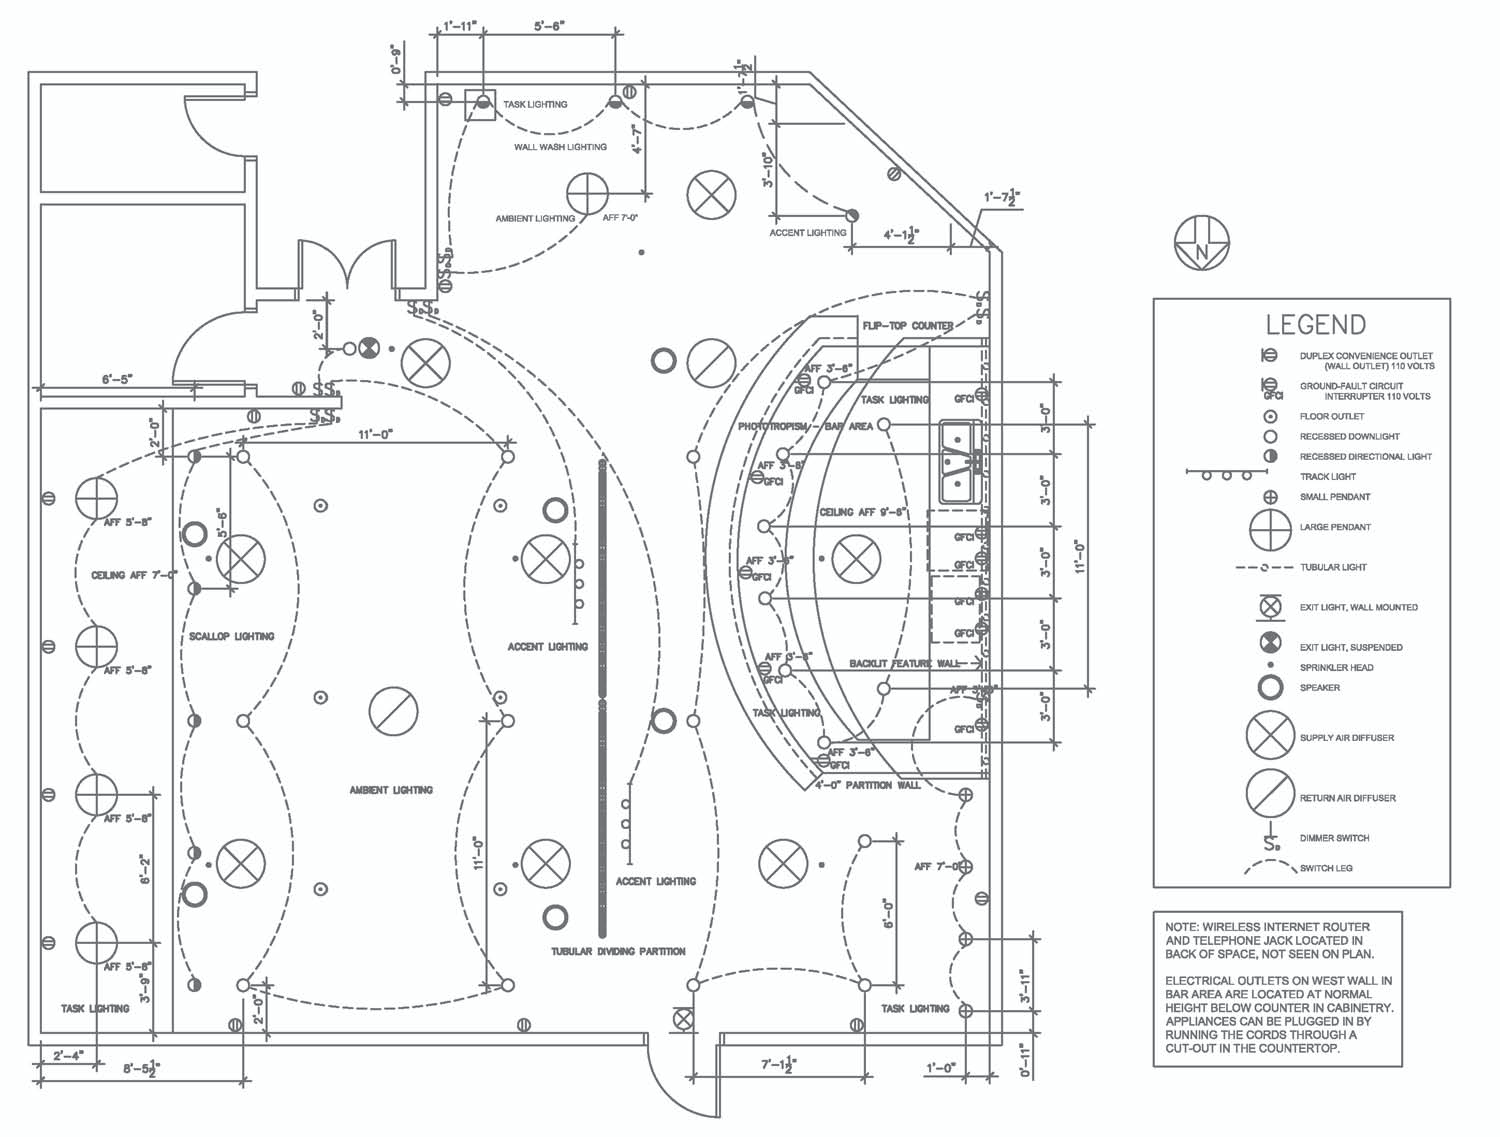 electrical layout cad drawings